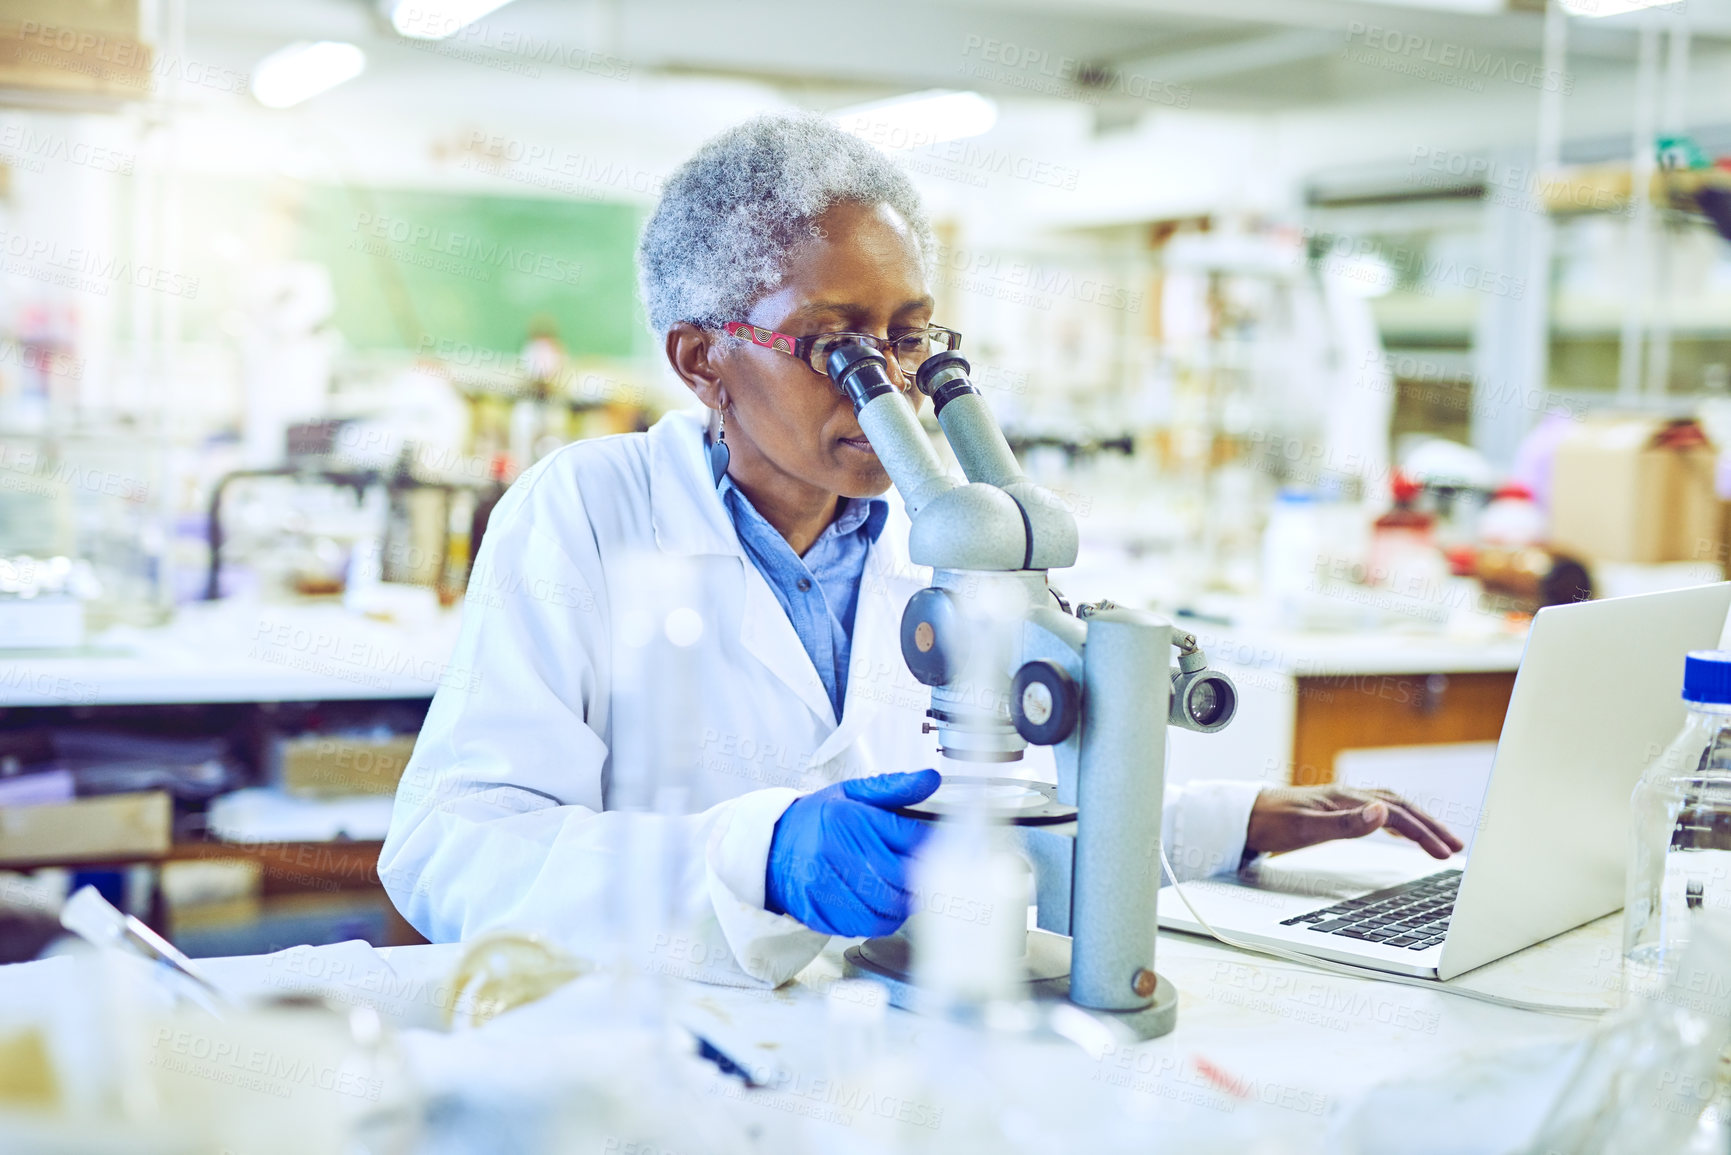 Buy stock photo Shot of a mature scientist using a microscope and laptop in a lab